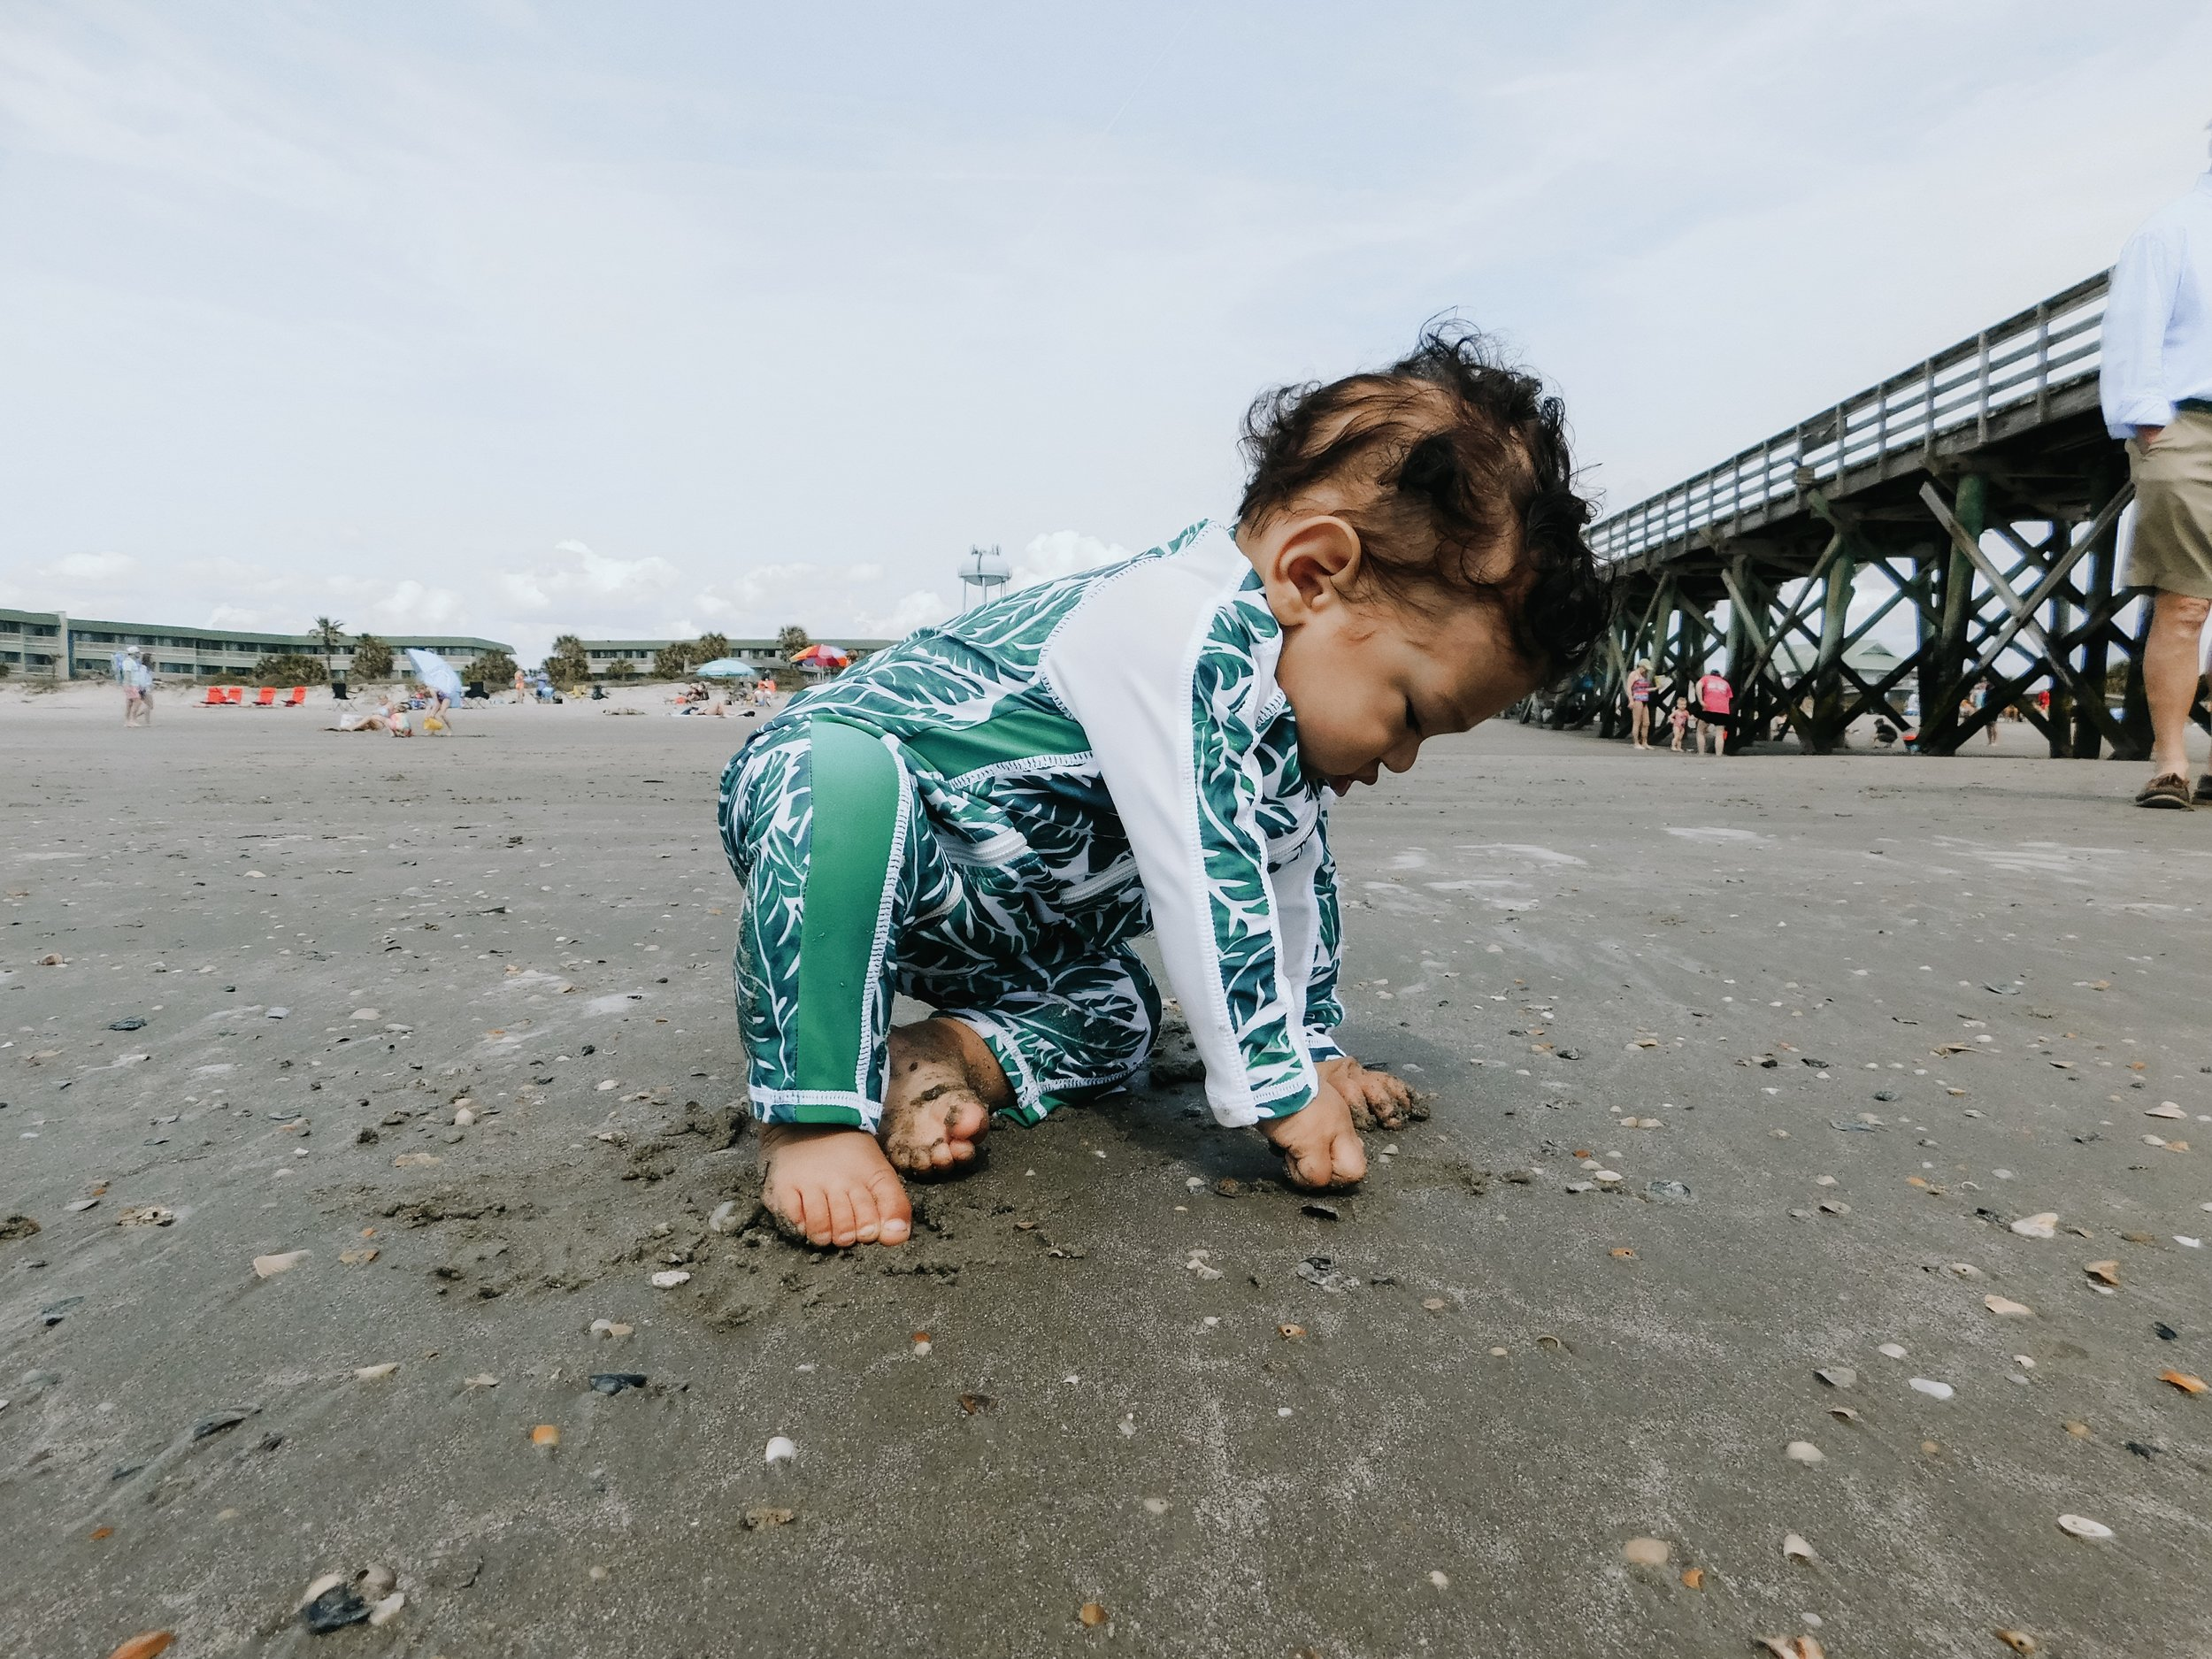 Was really hoping his first time crawling would happen at the beach..